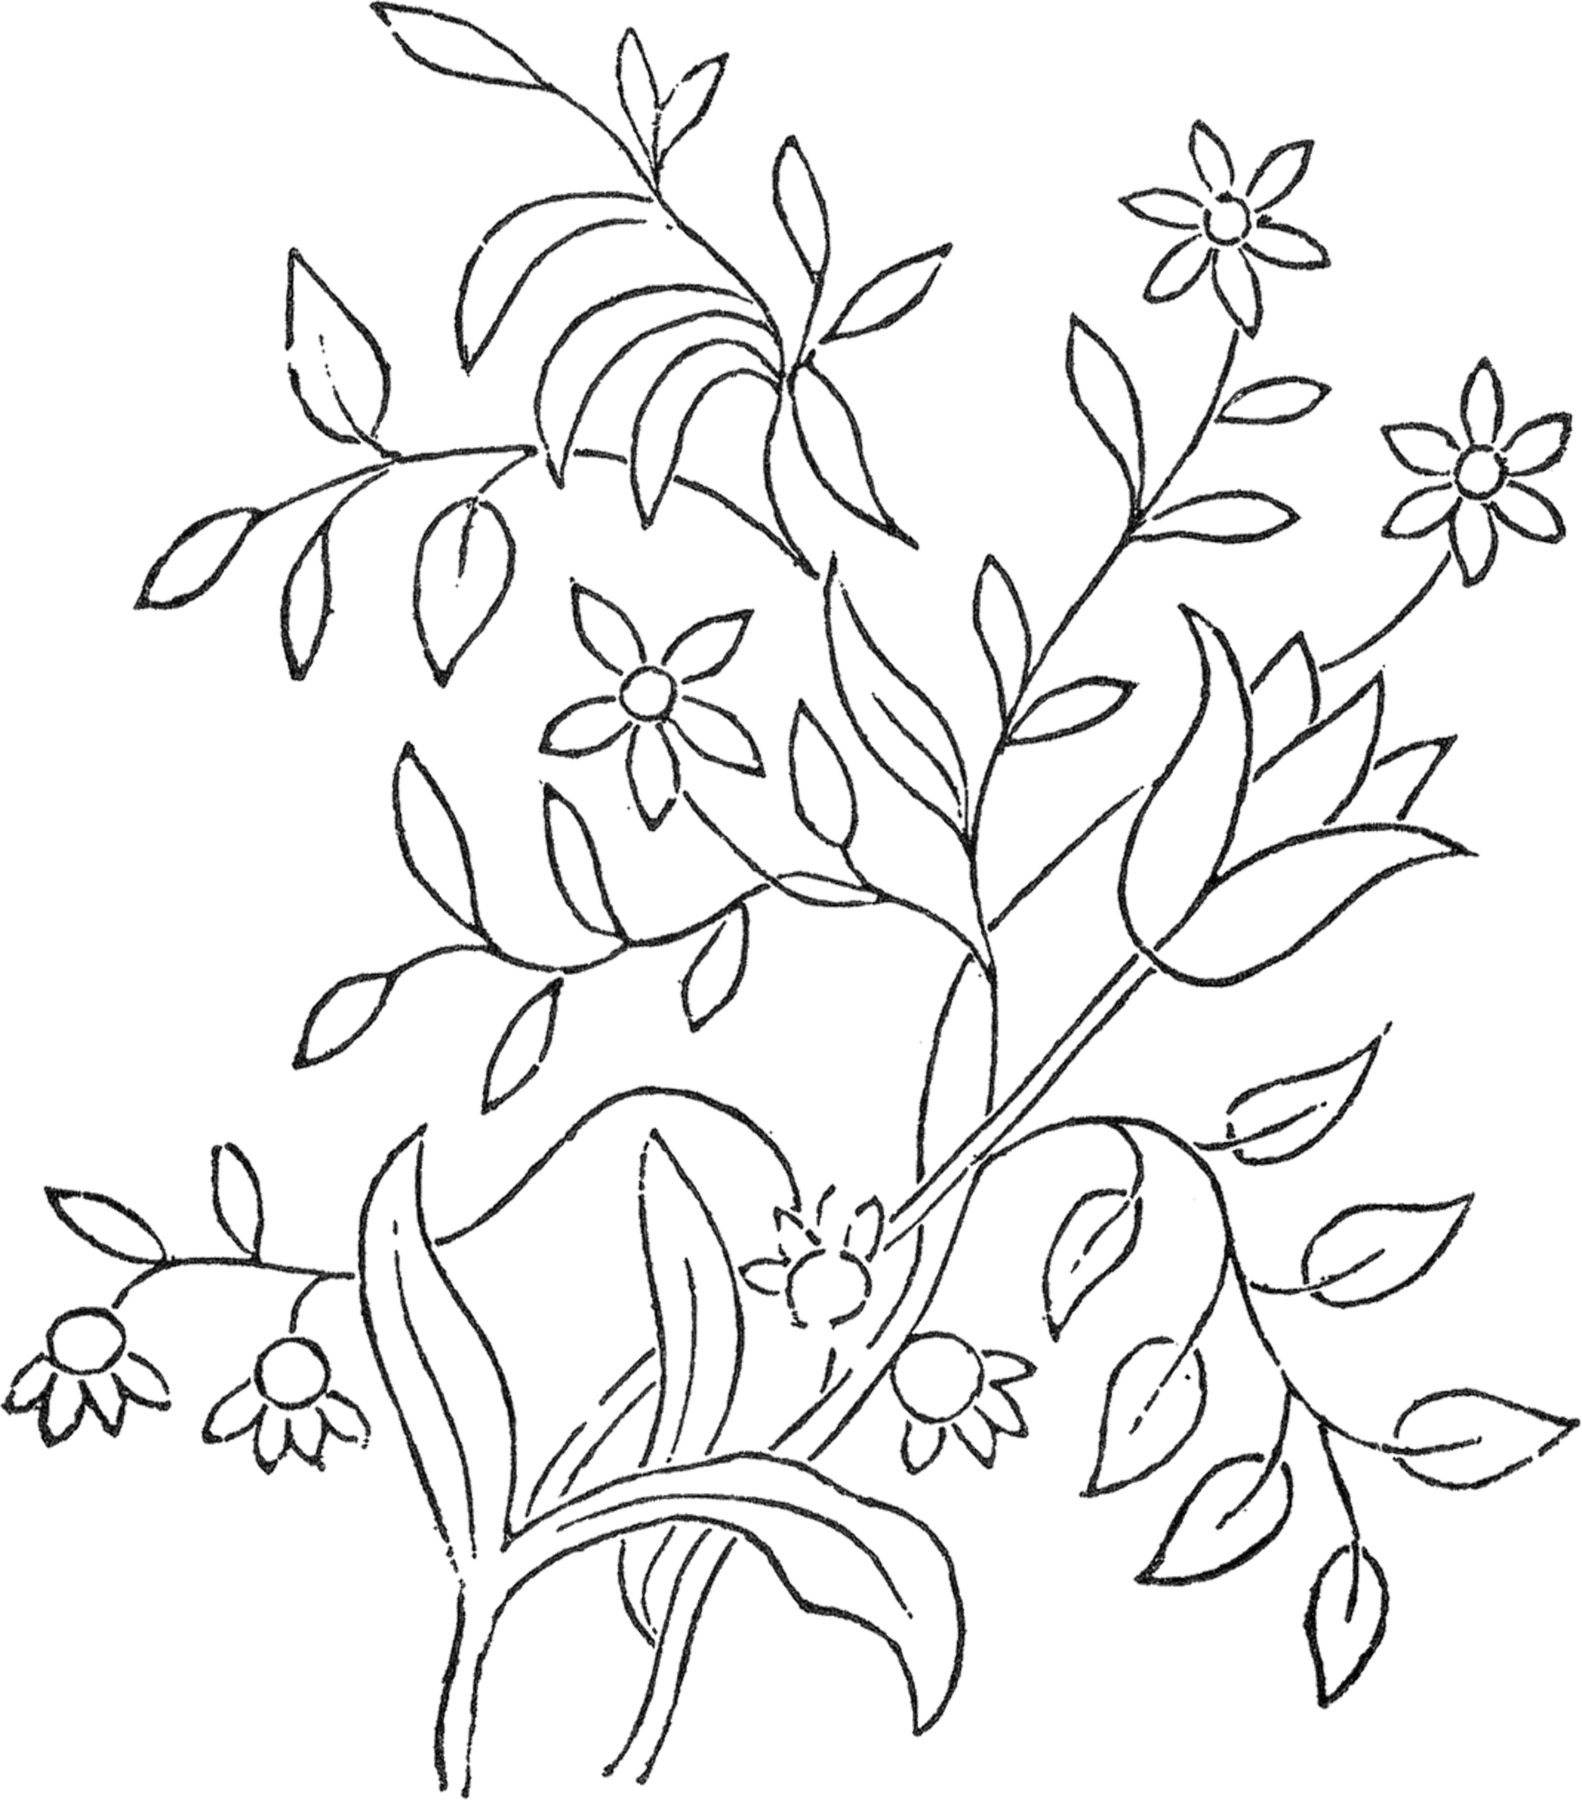 Flower Embroidery Pattern - The Graphics Fairy